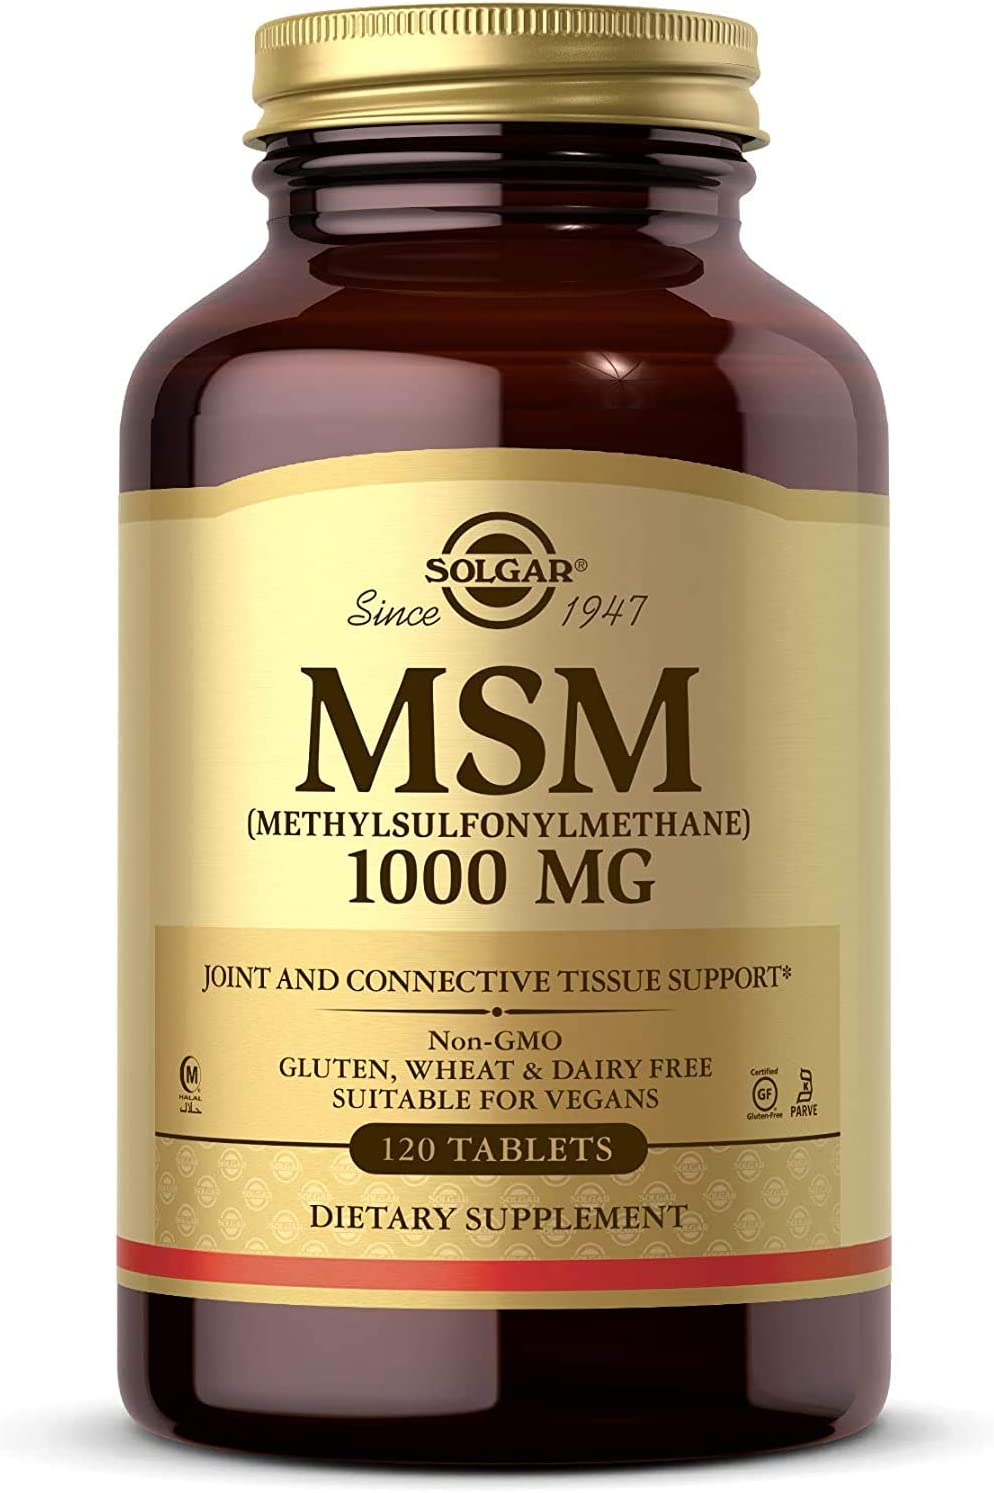 Solgar MSM 1000 mg 120 Tablets Max 41% OFF T Joints Connective - Phoenix Mall Supports